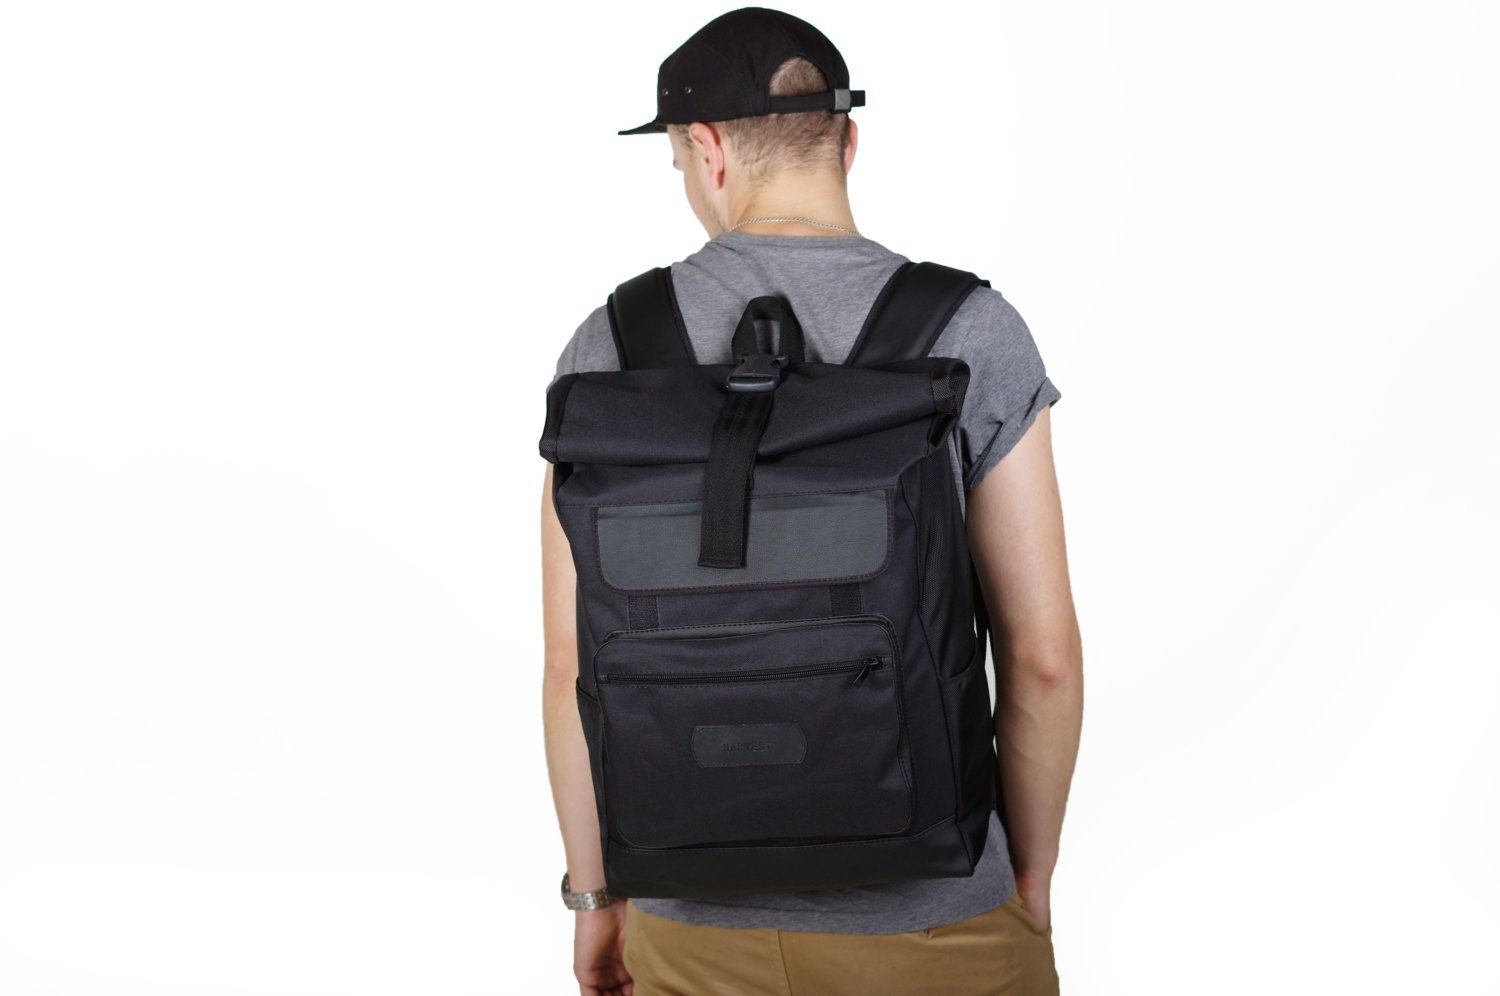 Roll Top WIDE Black Backpack, unisex Roll backpack, laptop roll backpack, laptop…